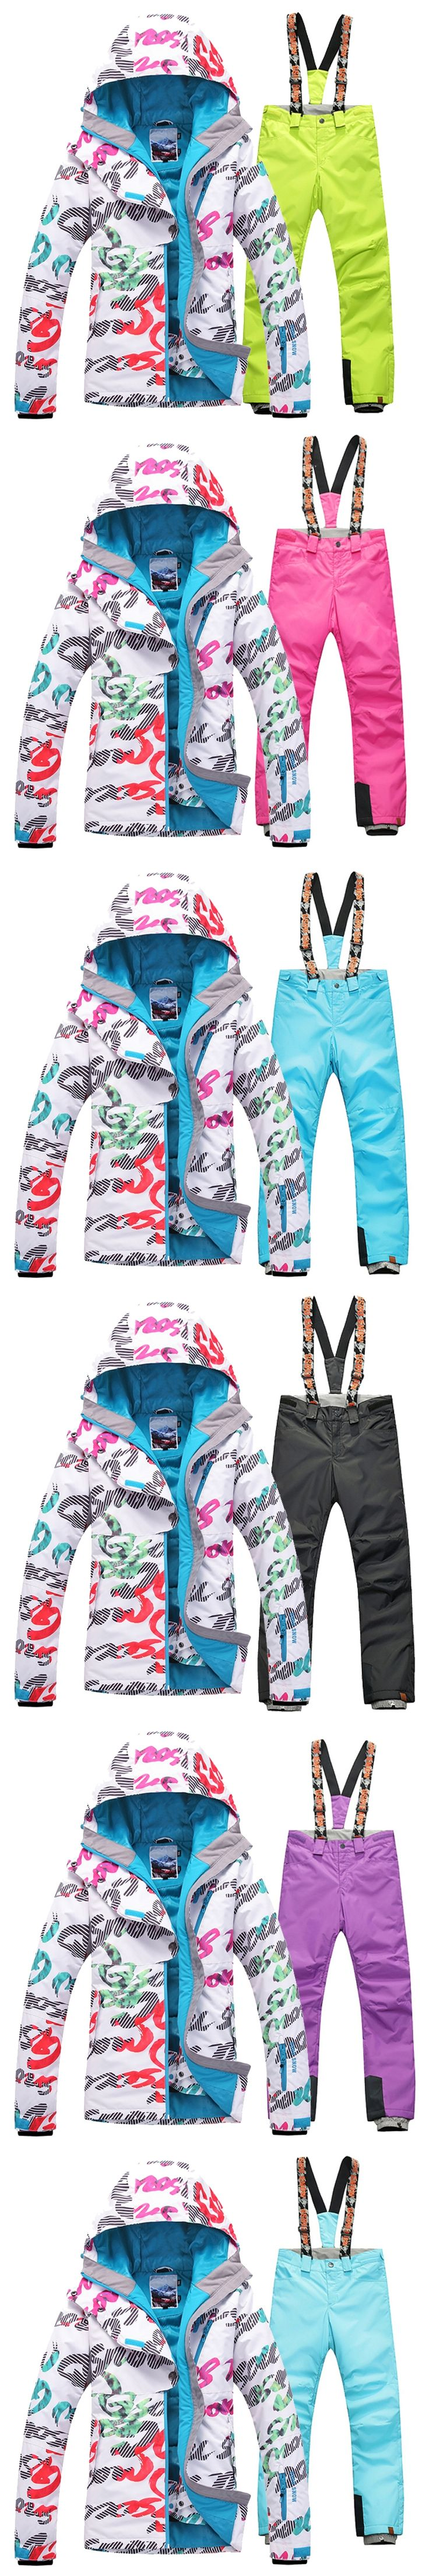 Gsou Snow Women Skiing Suit Waterproof Jacket and Pants Snowboarding Sets Winproof Breathable Professional Ski Suit Set